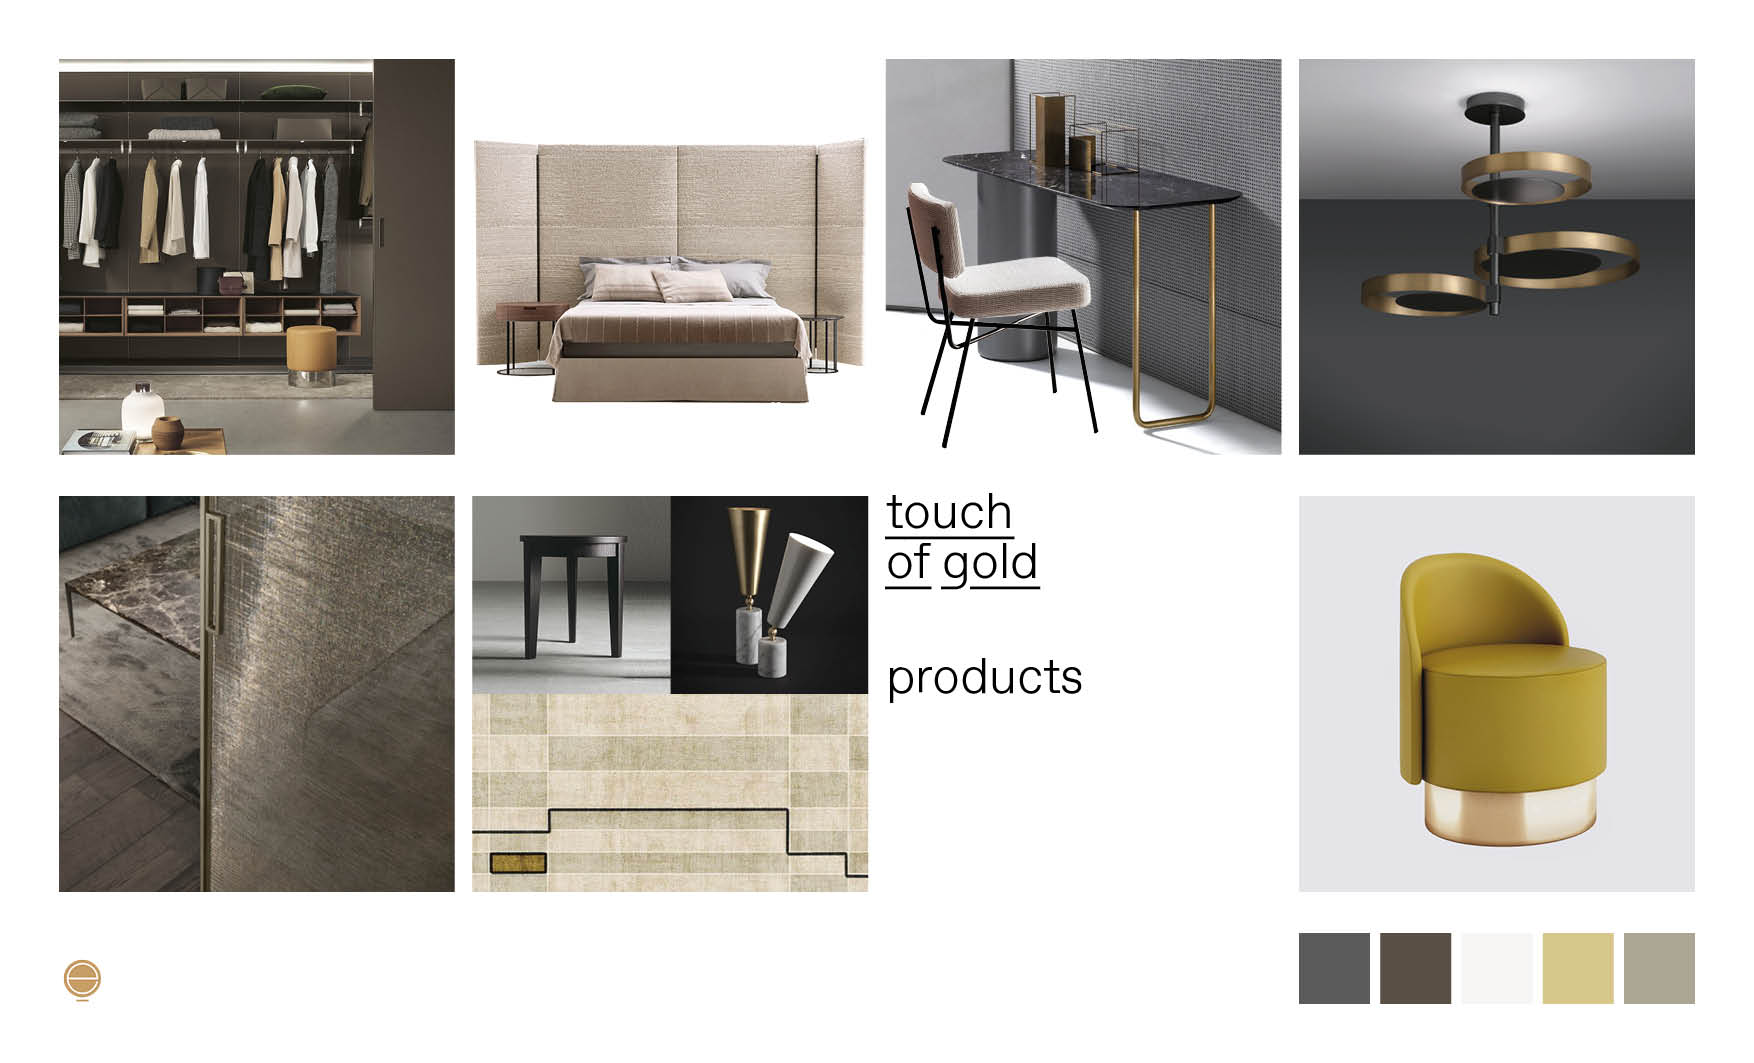 Italian modern bedroom furniture composition with gold and precious details